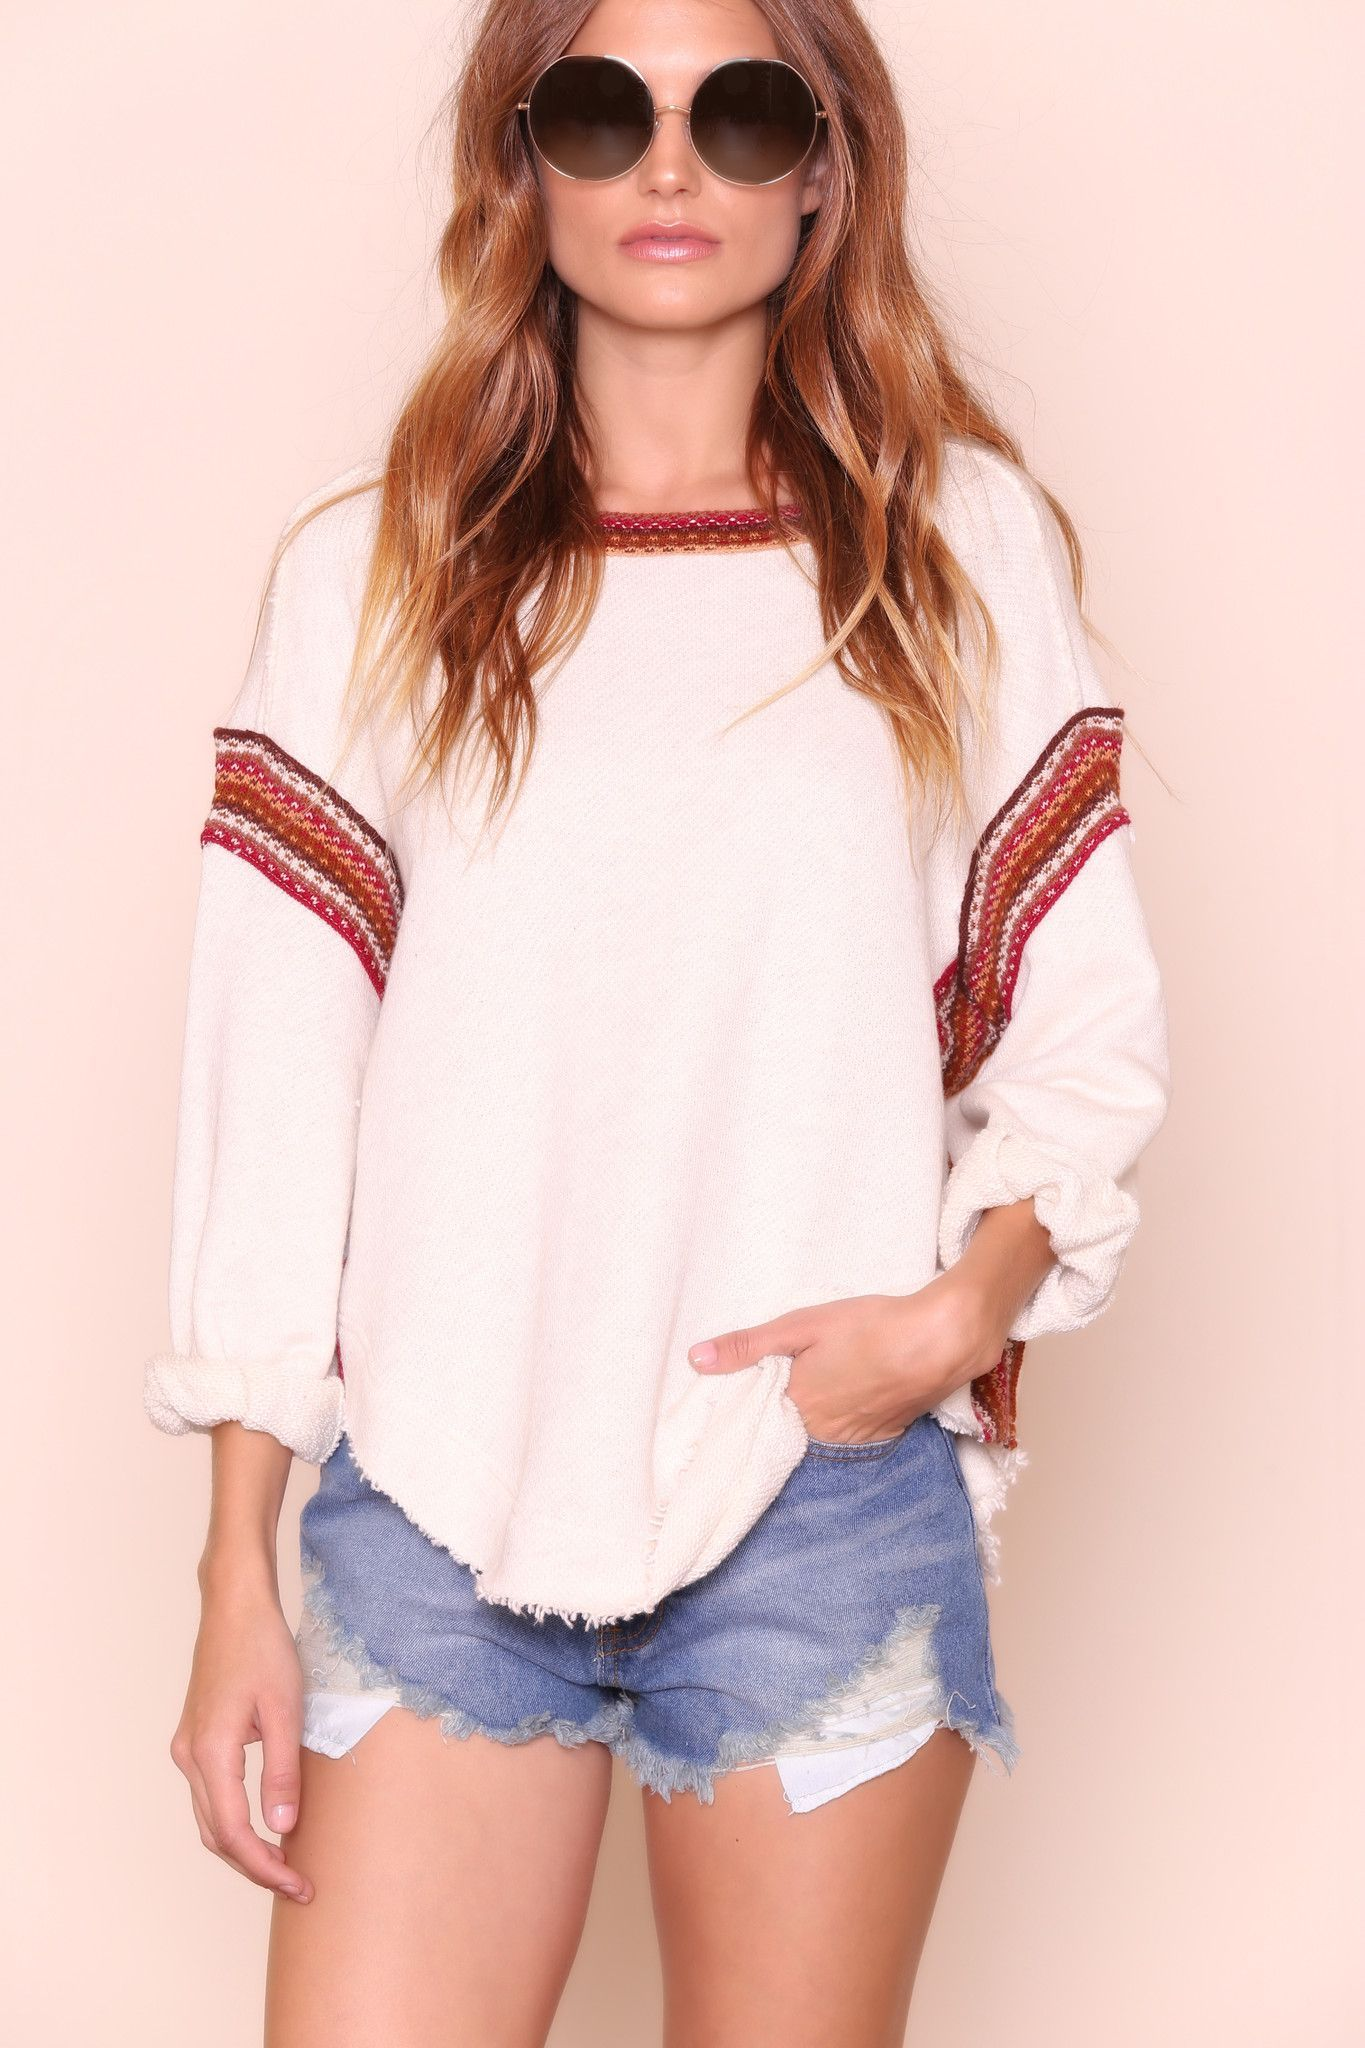 8d6af263a1f Trudy Pullover by Free People  SHOPLUNAB  LUNABCHRISTMAS